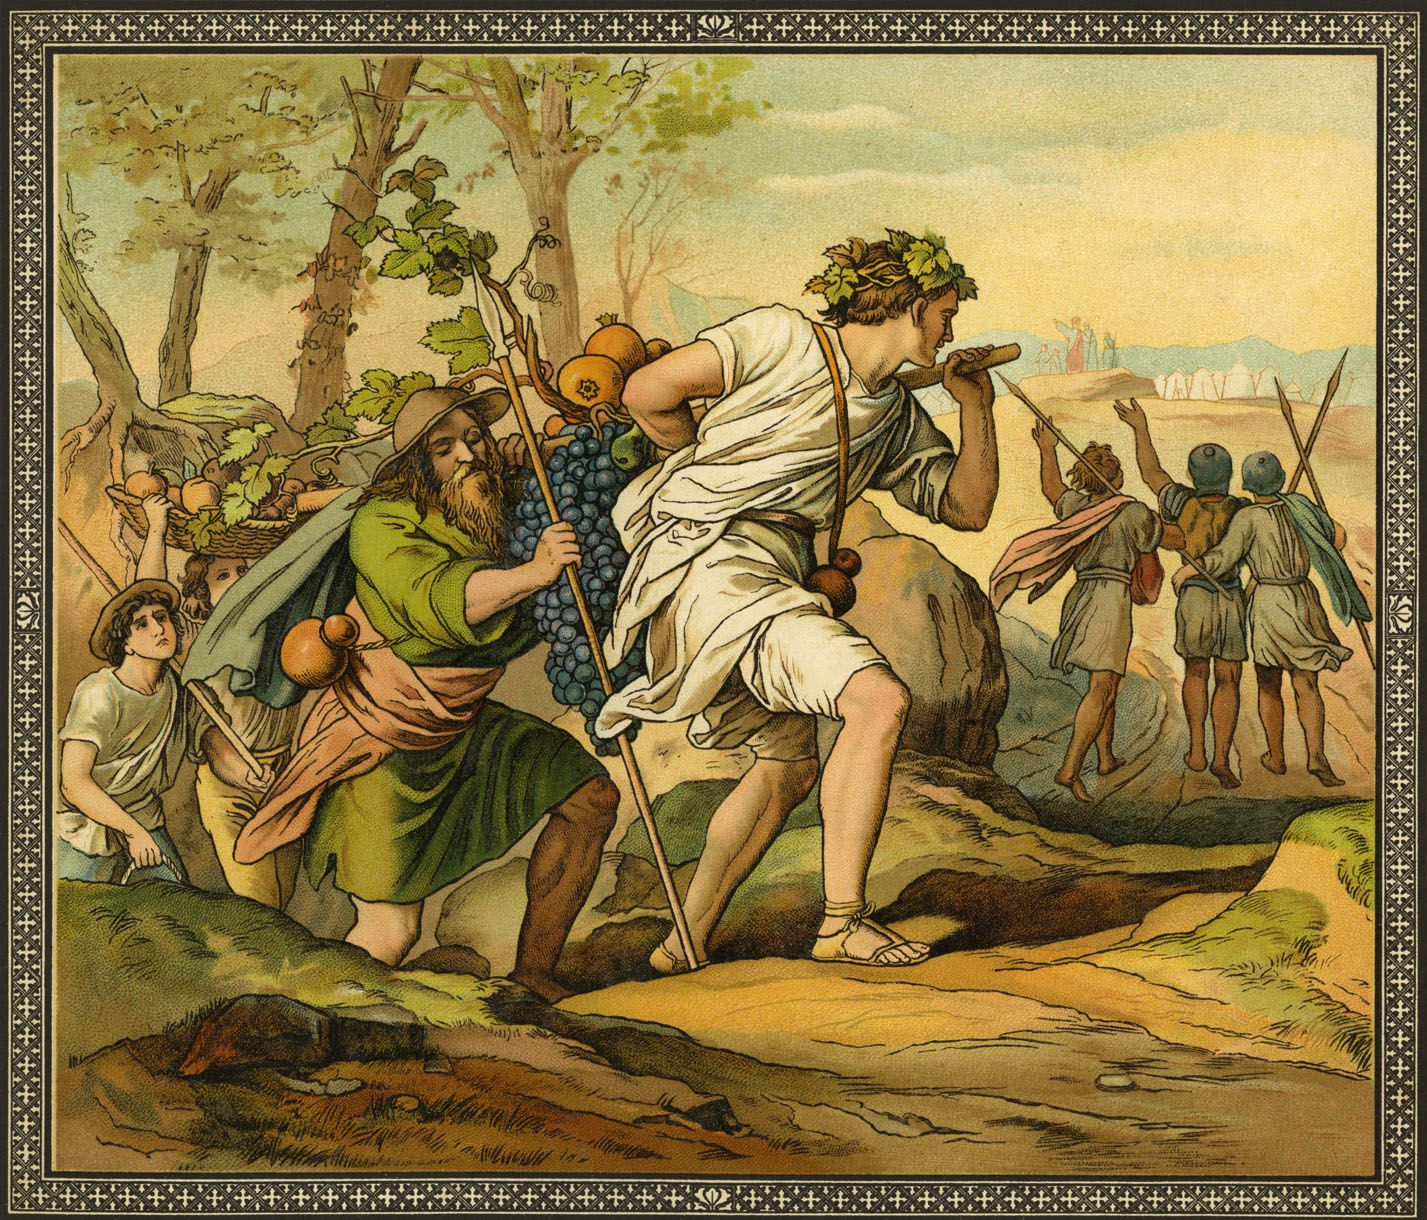 battle of jericho bible story and lessons